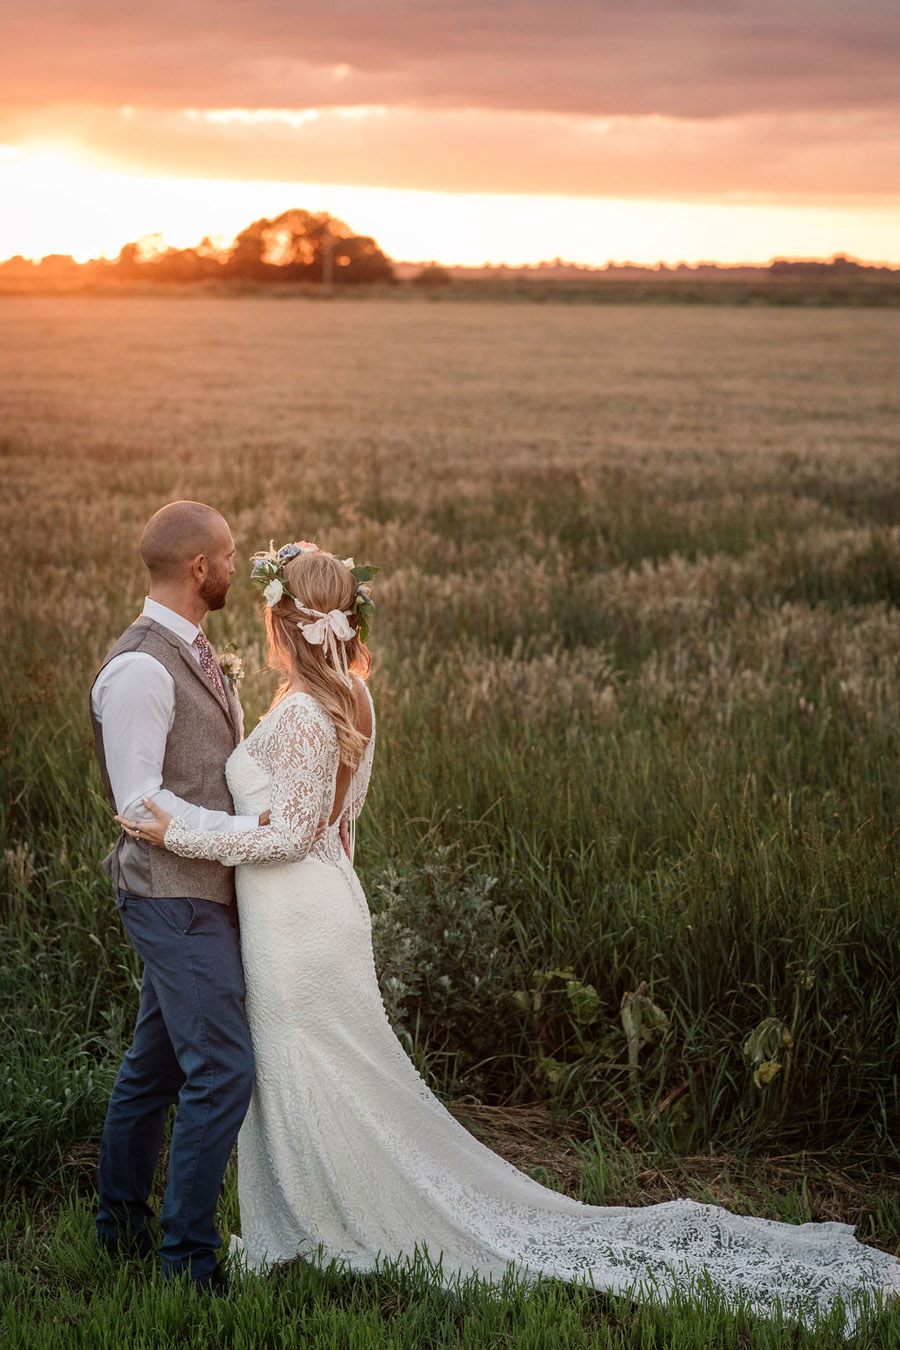 Evening sunset wedding inspiration at Willow Grange Farm, with Becky Harley Photography (53)